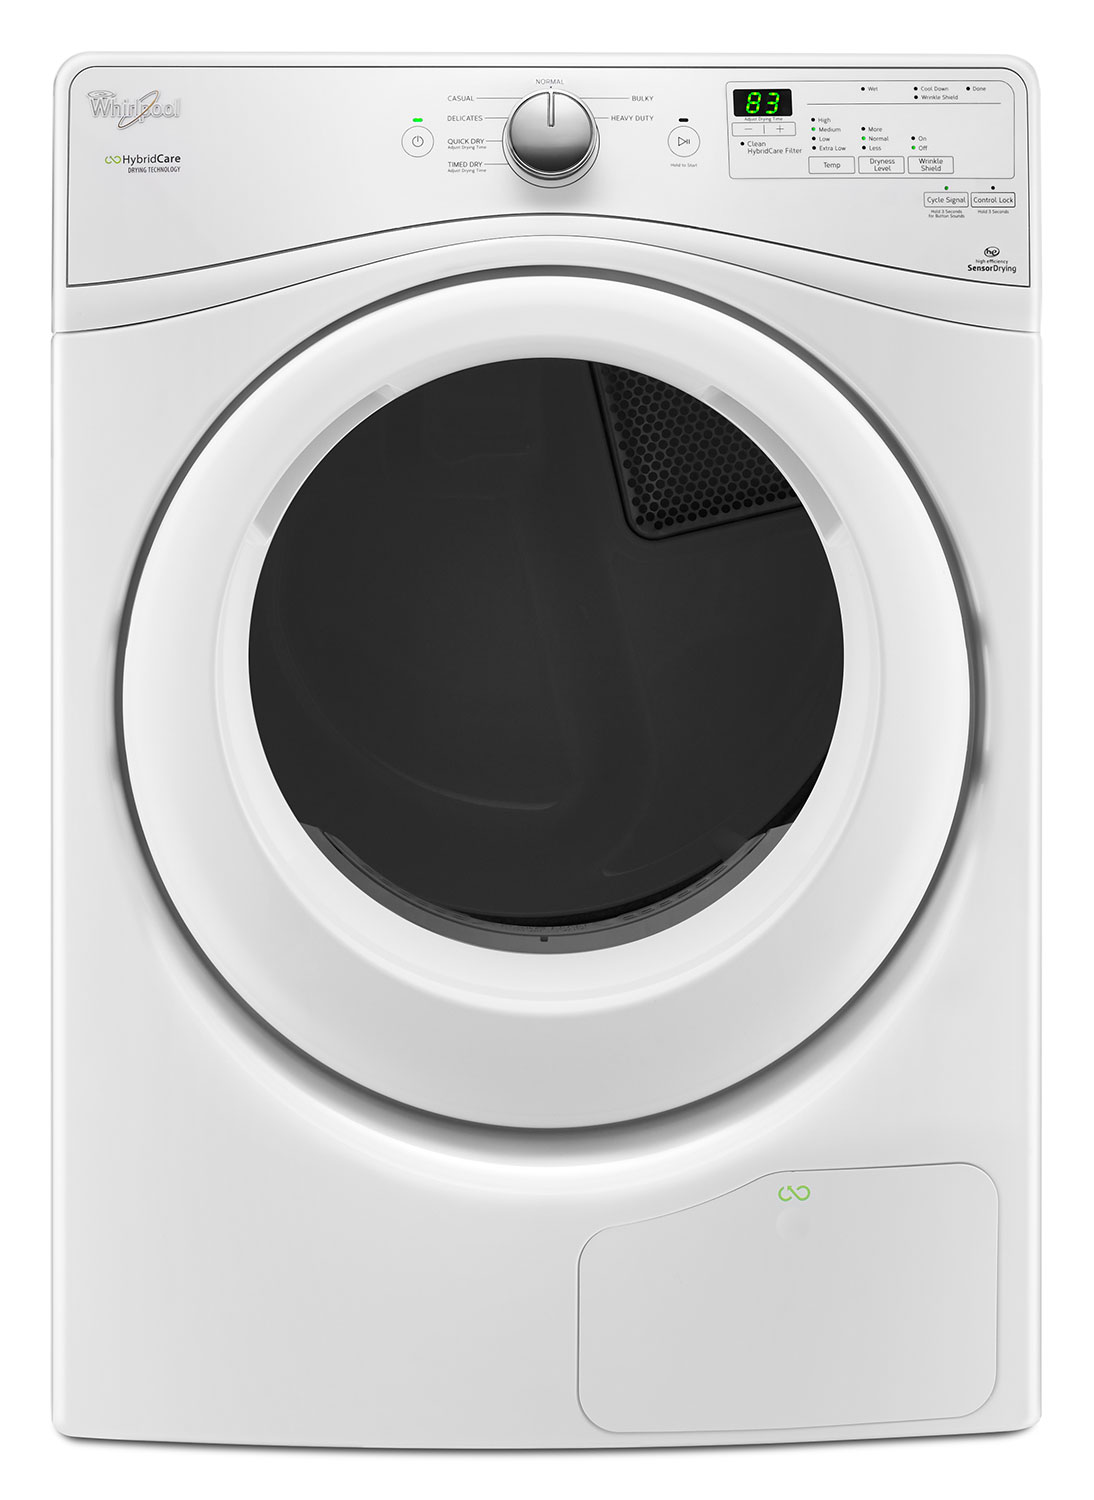 Washers and Dryers - Whirlpool White Electric Heat Pump Dryer (7.4 Cu. Ft.) - YWED7990FW